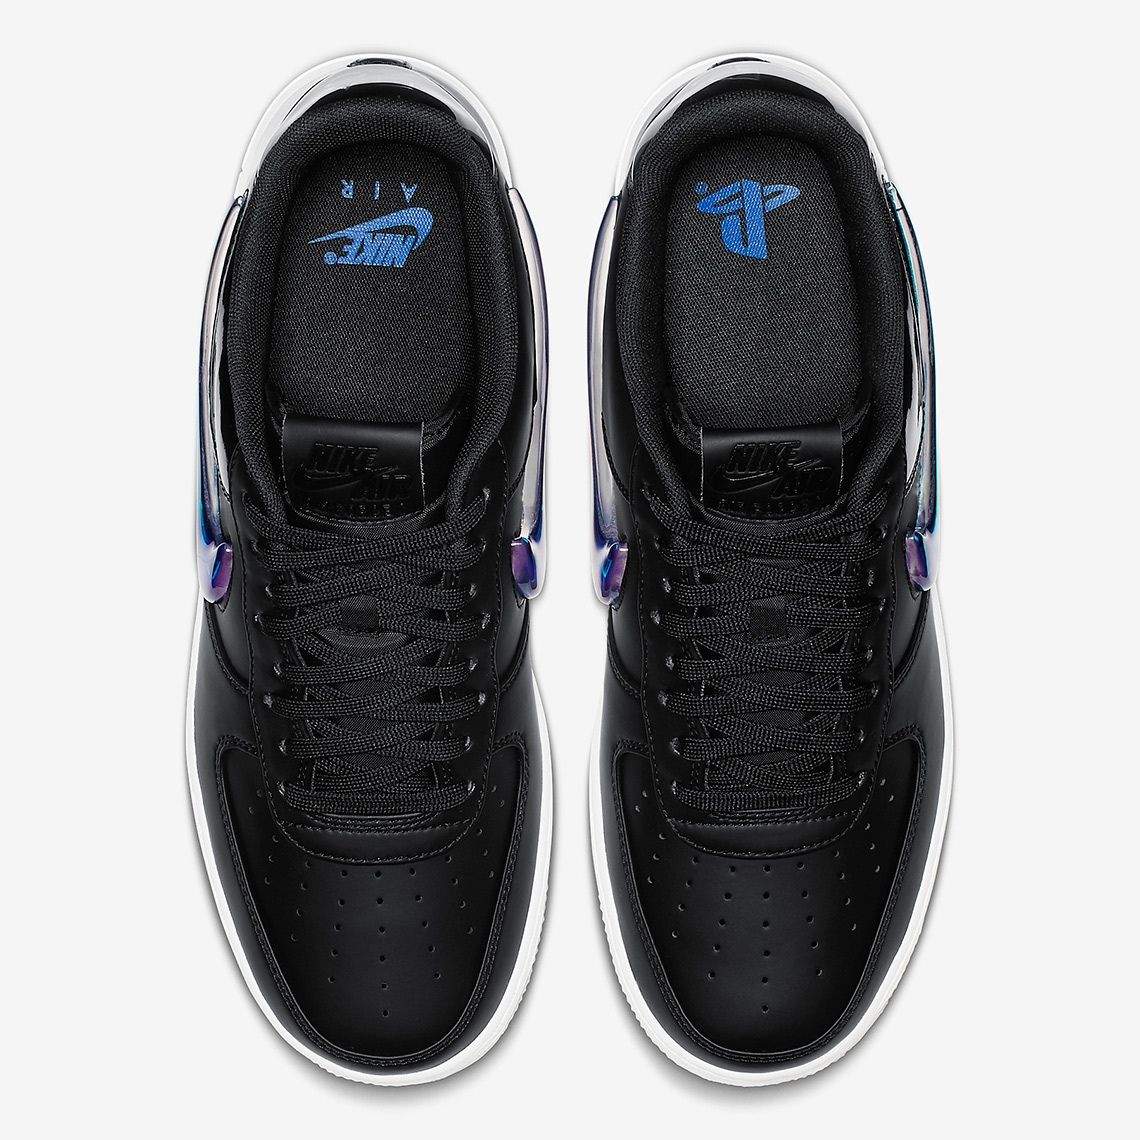 aae102c1102d6 Sony Playstation Nike Air Force 1 Low BQ3634-001 Official Images ...